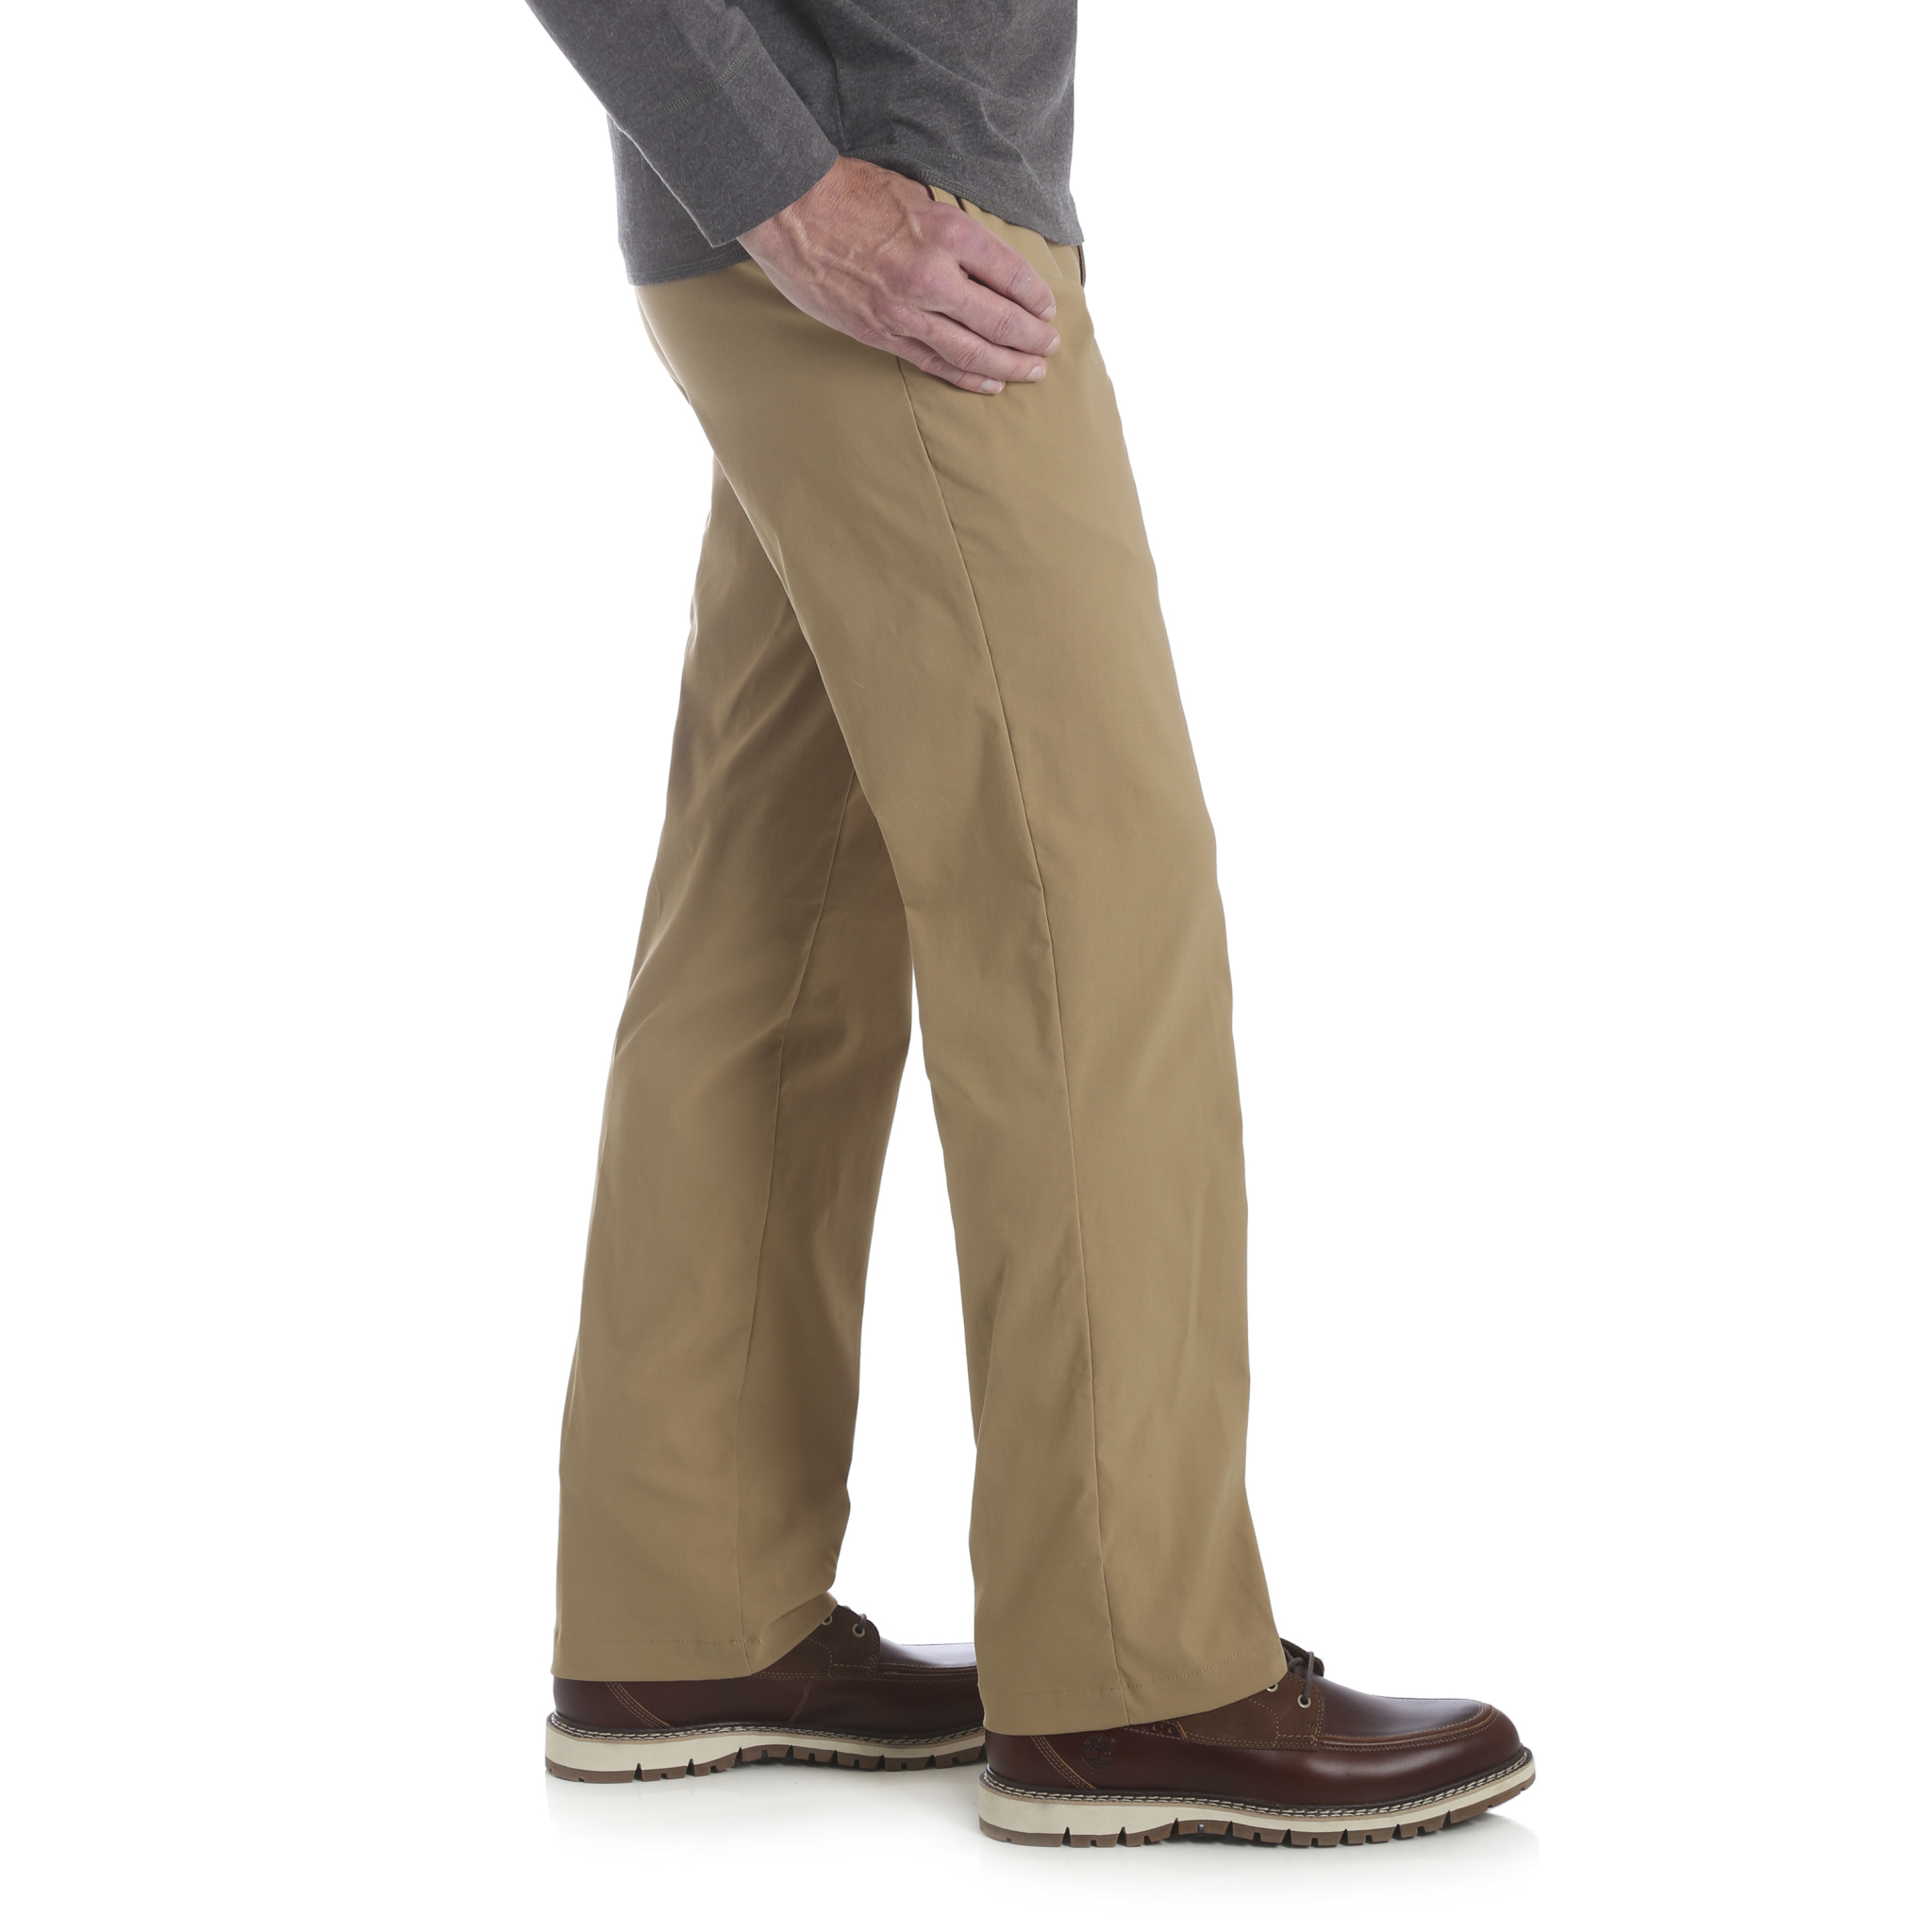 Wrangler-NEW-Solid-Men-039-s-Performance-Series-Outdoor-Comfort-Straight-Leg-Pants thumbnail 5